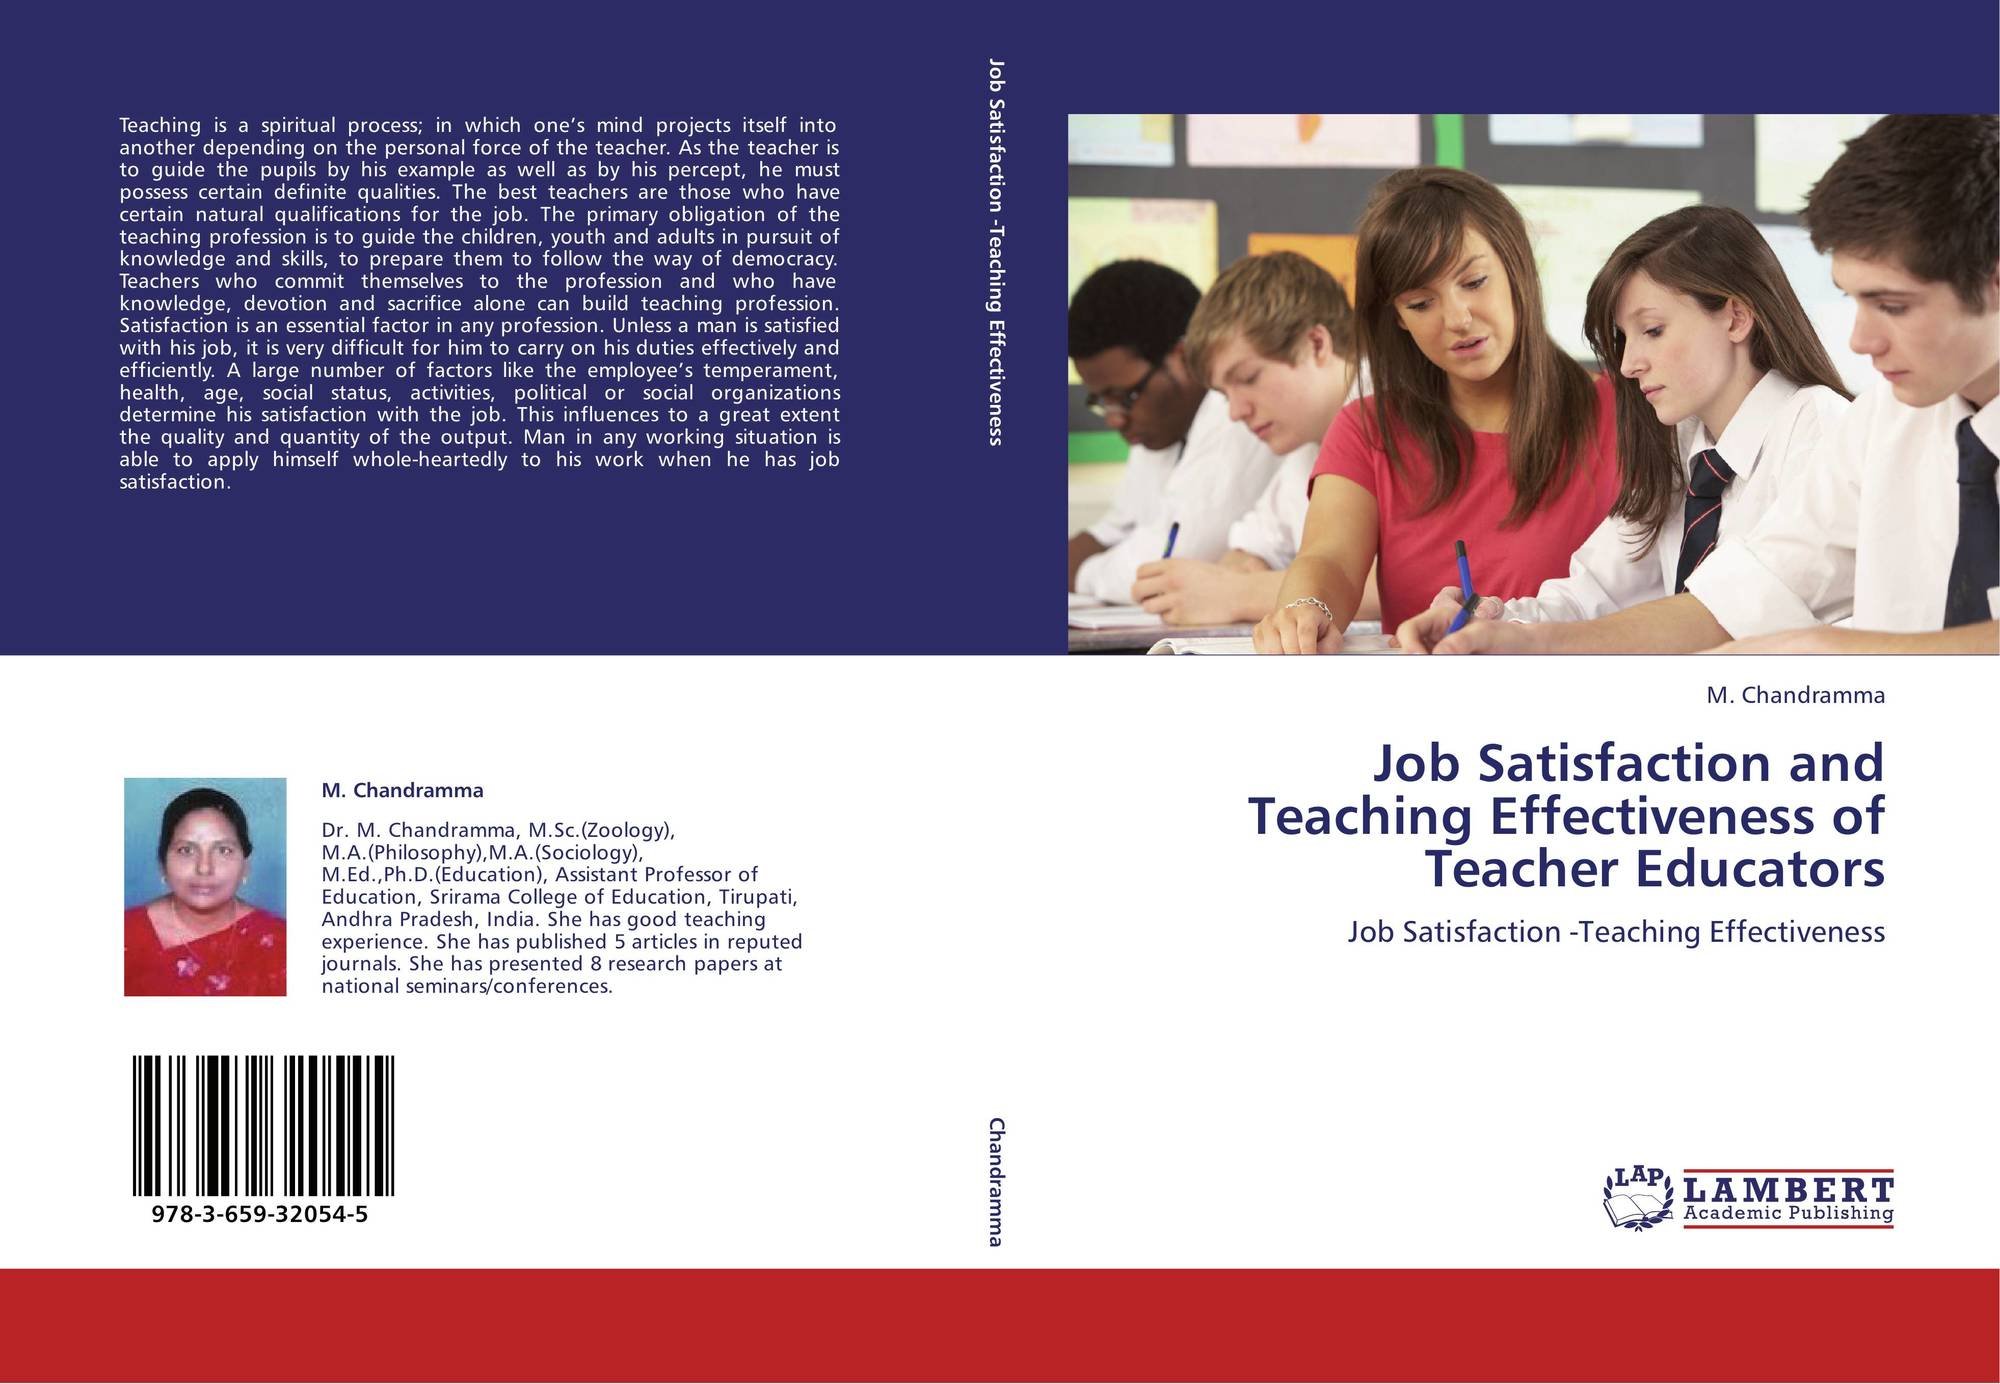 job satisfaction for teacher in malaysia Andre bishay levels of job satisfaction and motivation were measured by survey in a sample of 50 teachers a sample of 12 teachers was then studied using the experience sam.